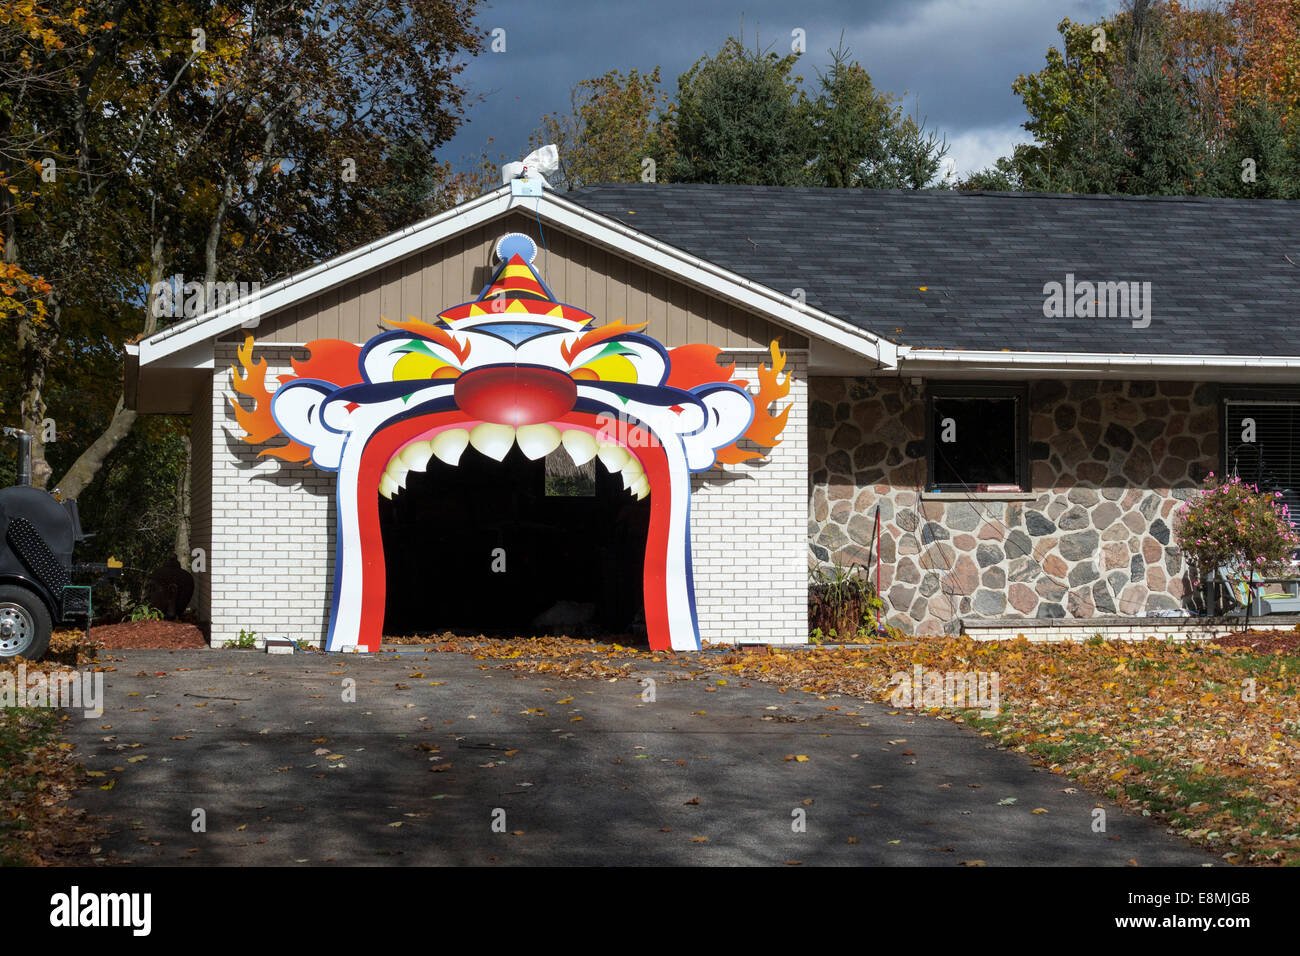 Halloween garage door covers - Scary Frightening Huge Clown Face With Teeth Covering The Entrance To A Garage Decorated For Halloween